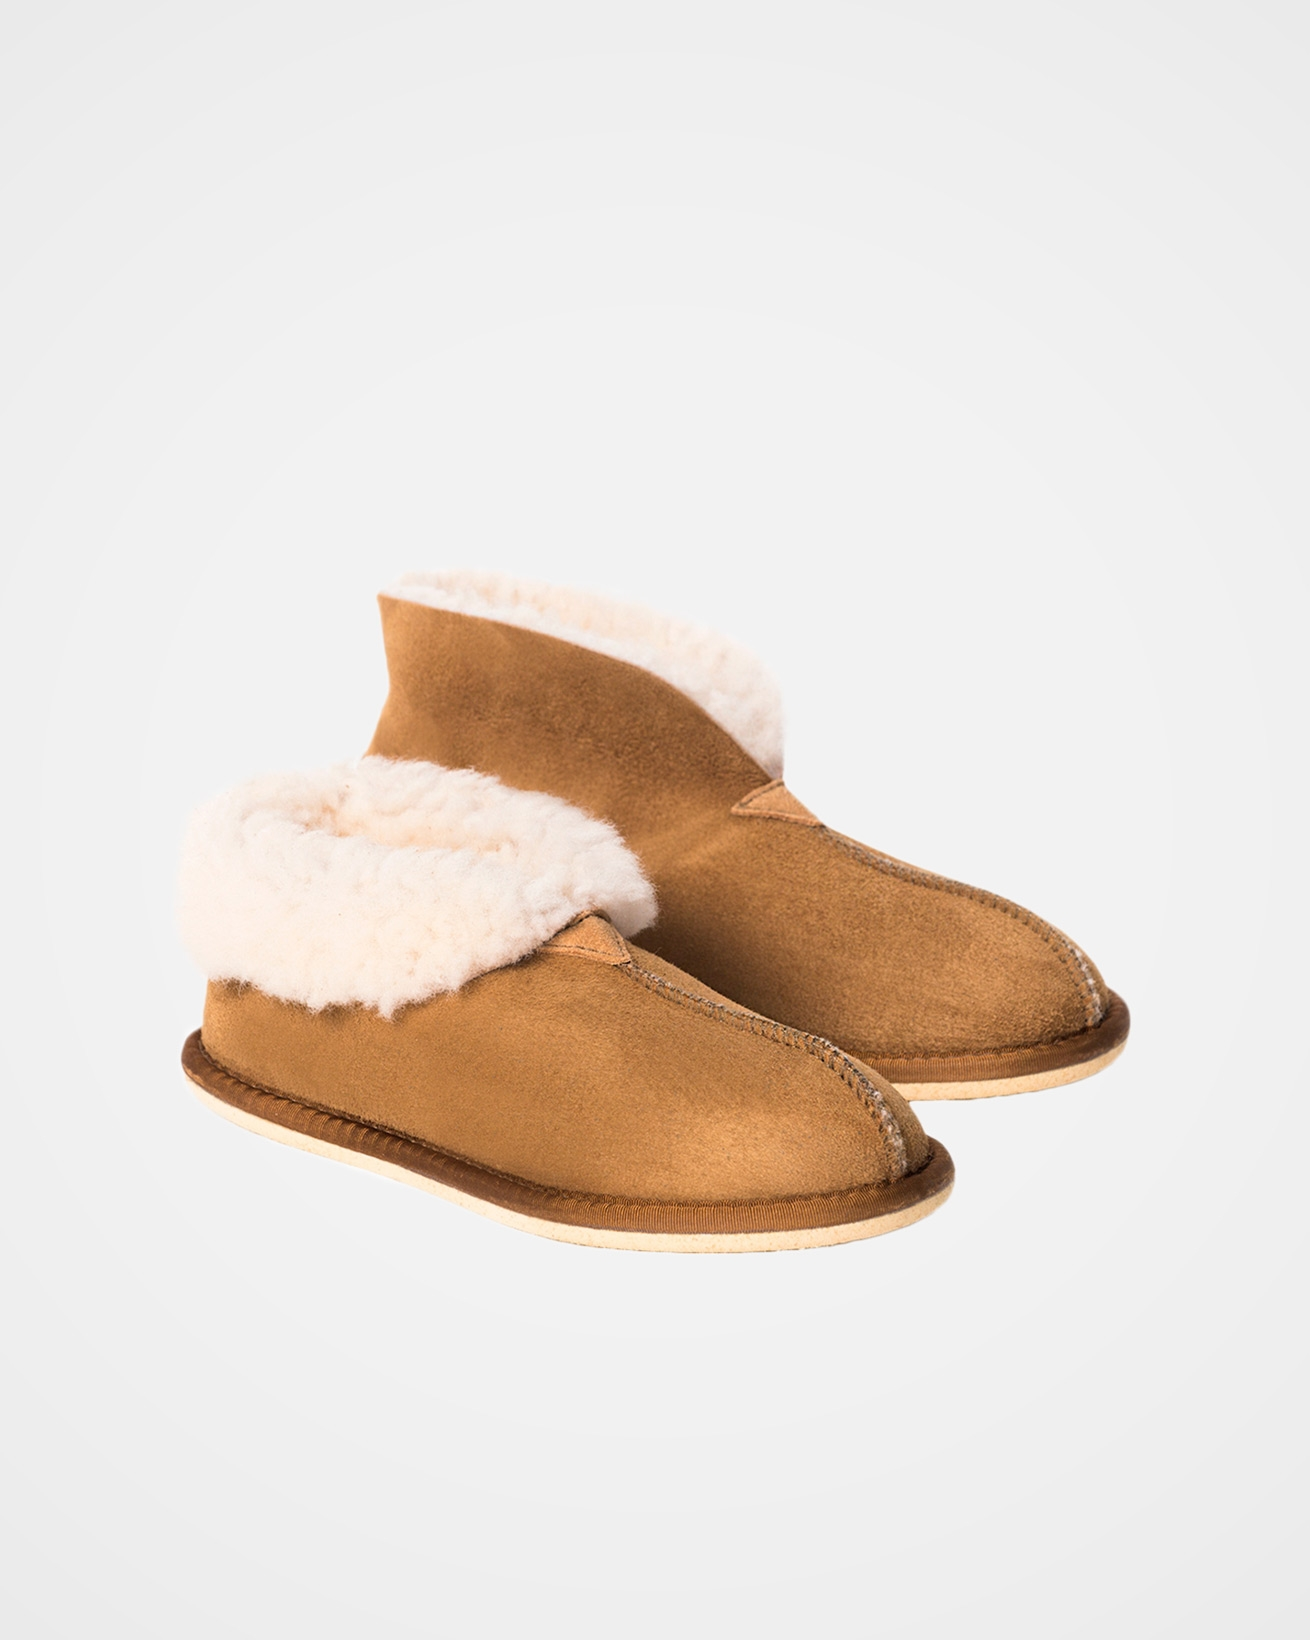 2100_ladies-sheepskin-bootee-slippers_spice_pair.jpg